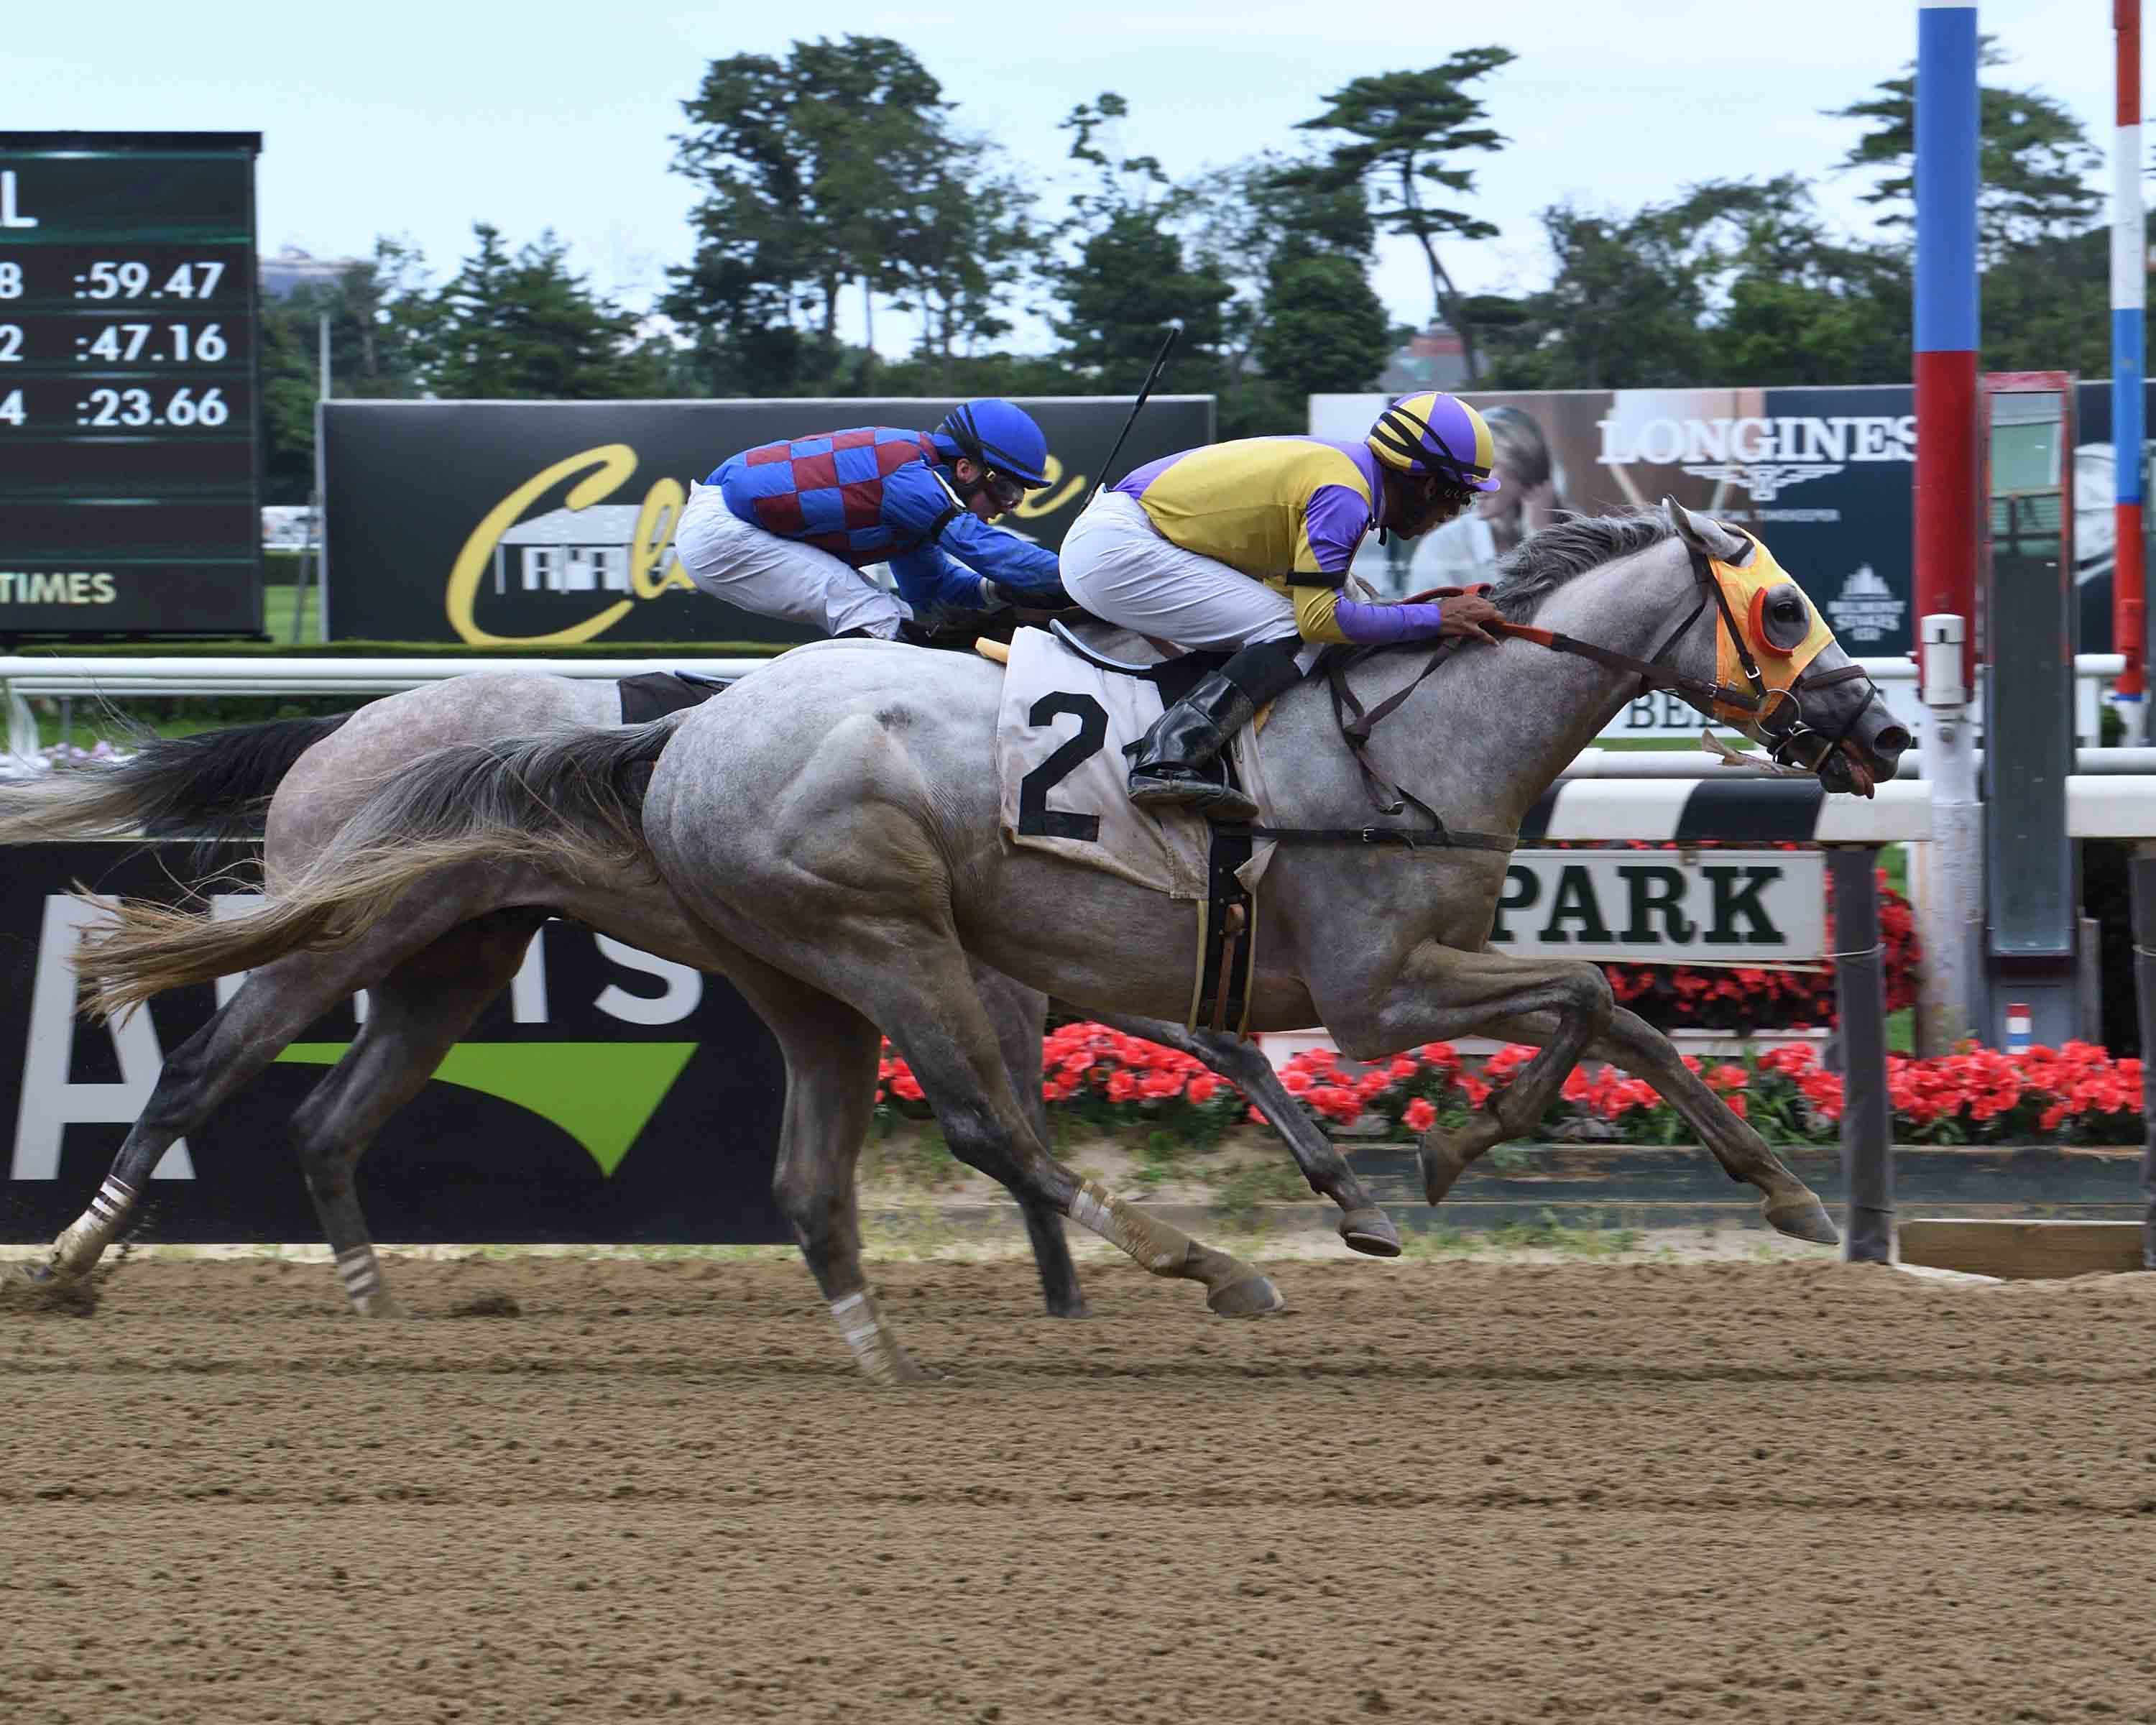 Bill Heller's New York-Breds at the Races: June 28 to July 4 – New